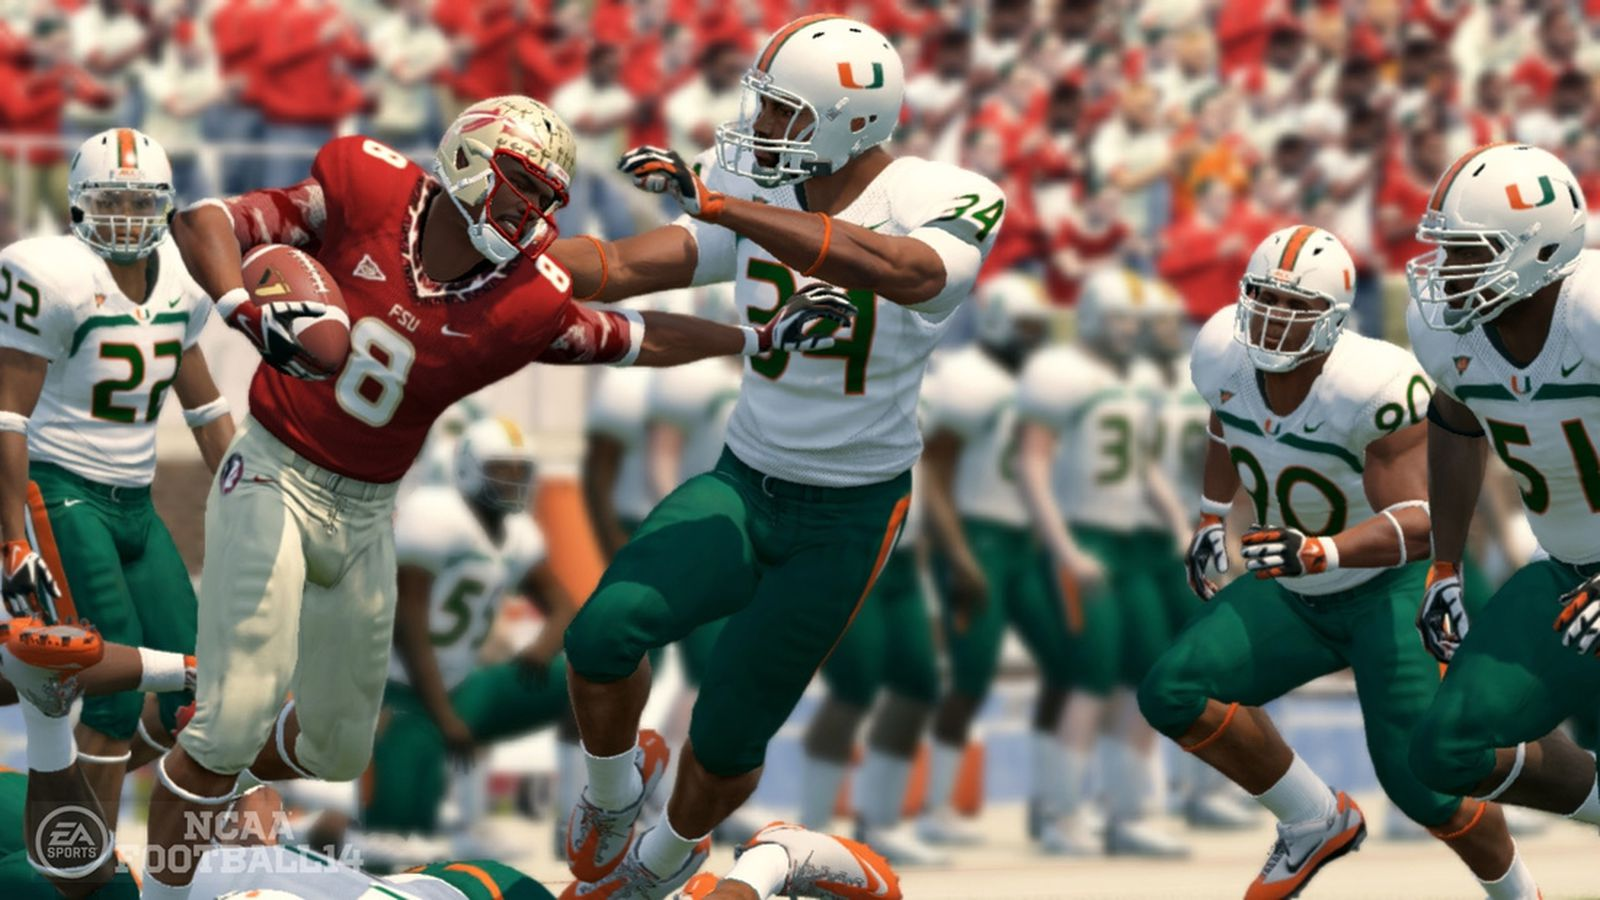 gambling on college sports College athletes and gambling was an increased need to further educate students about the strict rules surrounding college sports gambling.